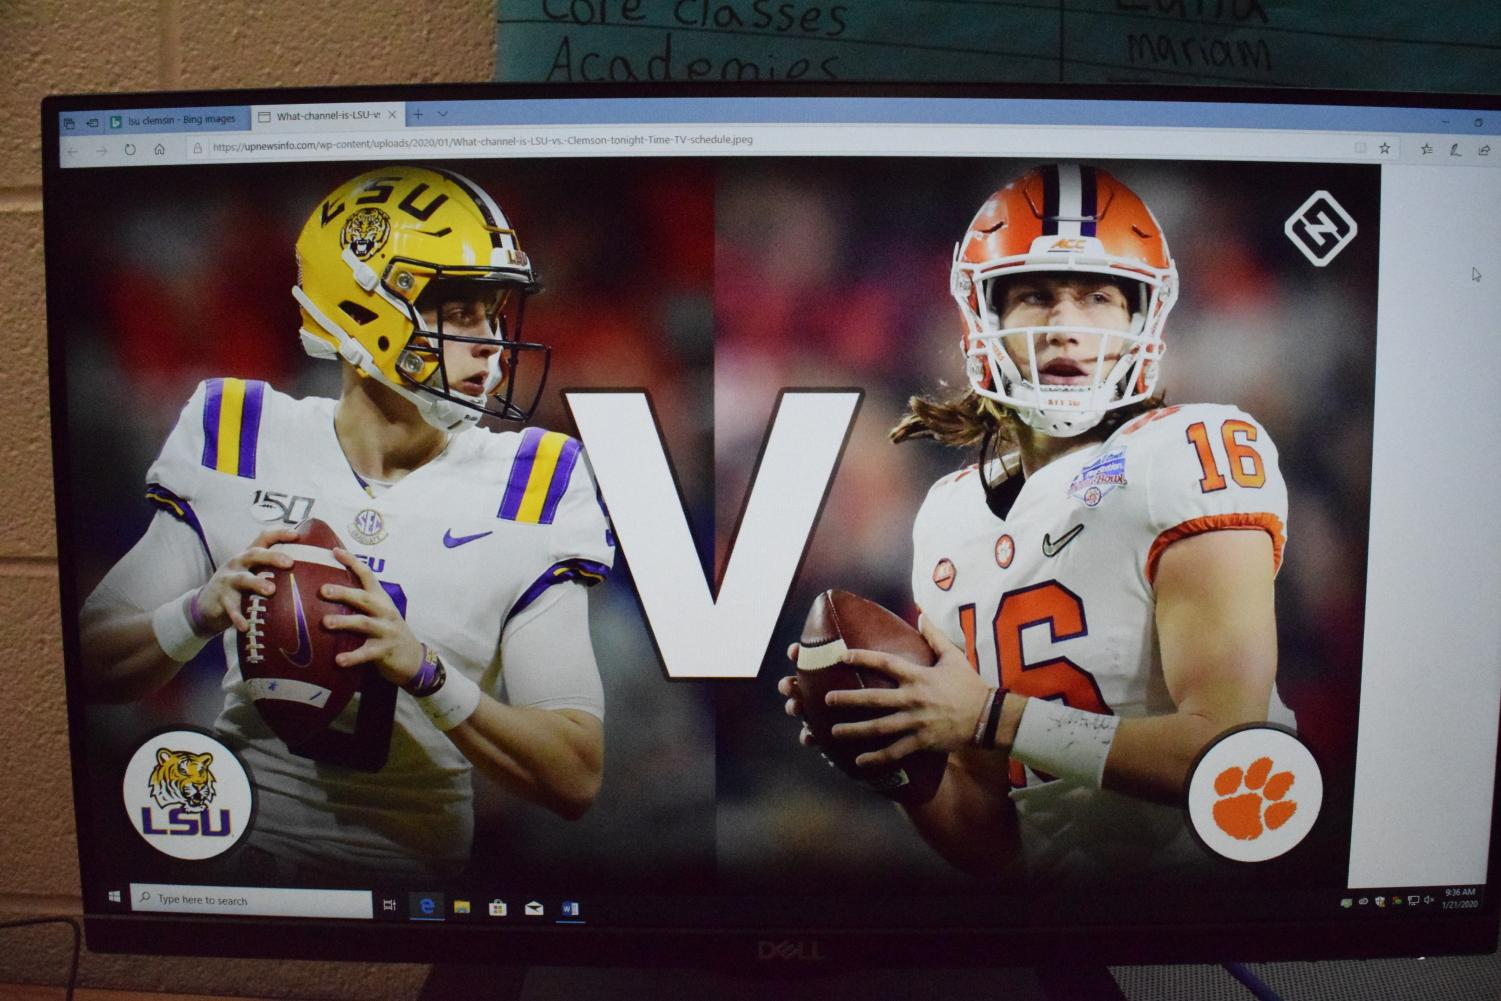 LSU and Clemson go head to head in the College Football Playoff National Championship.